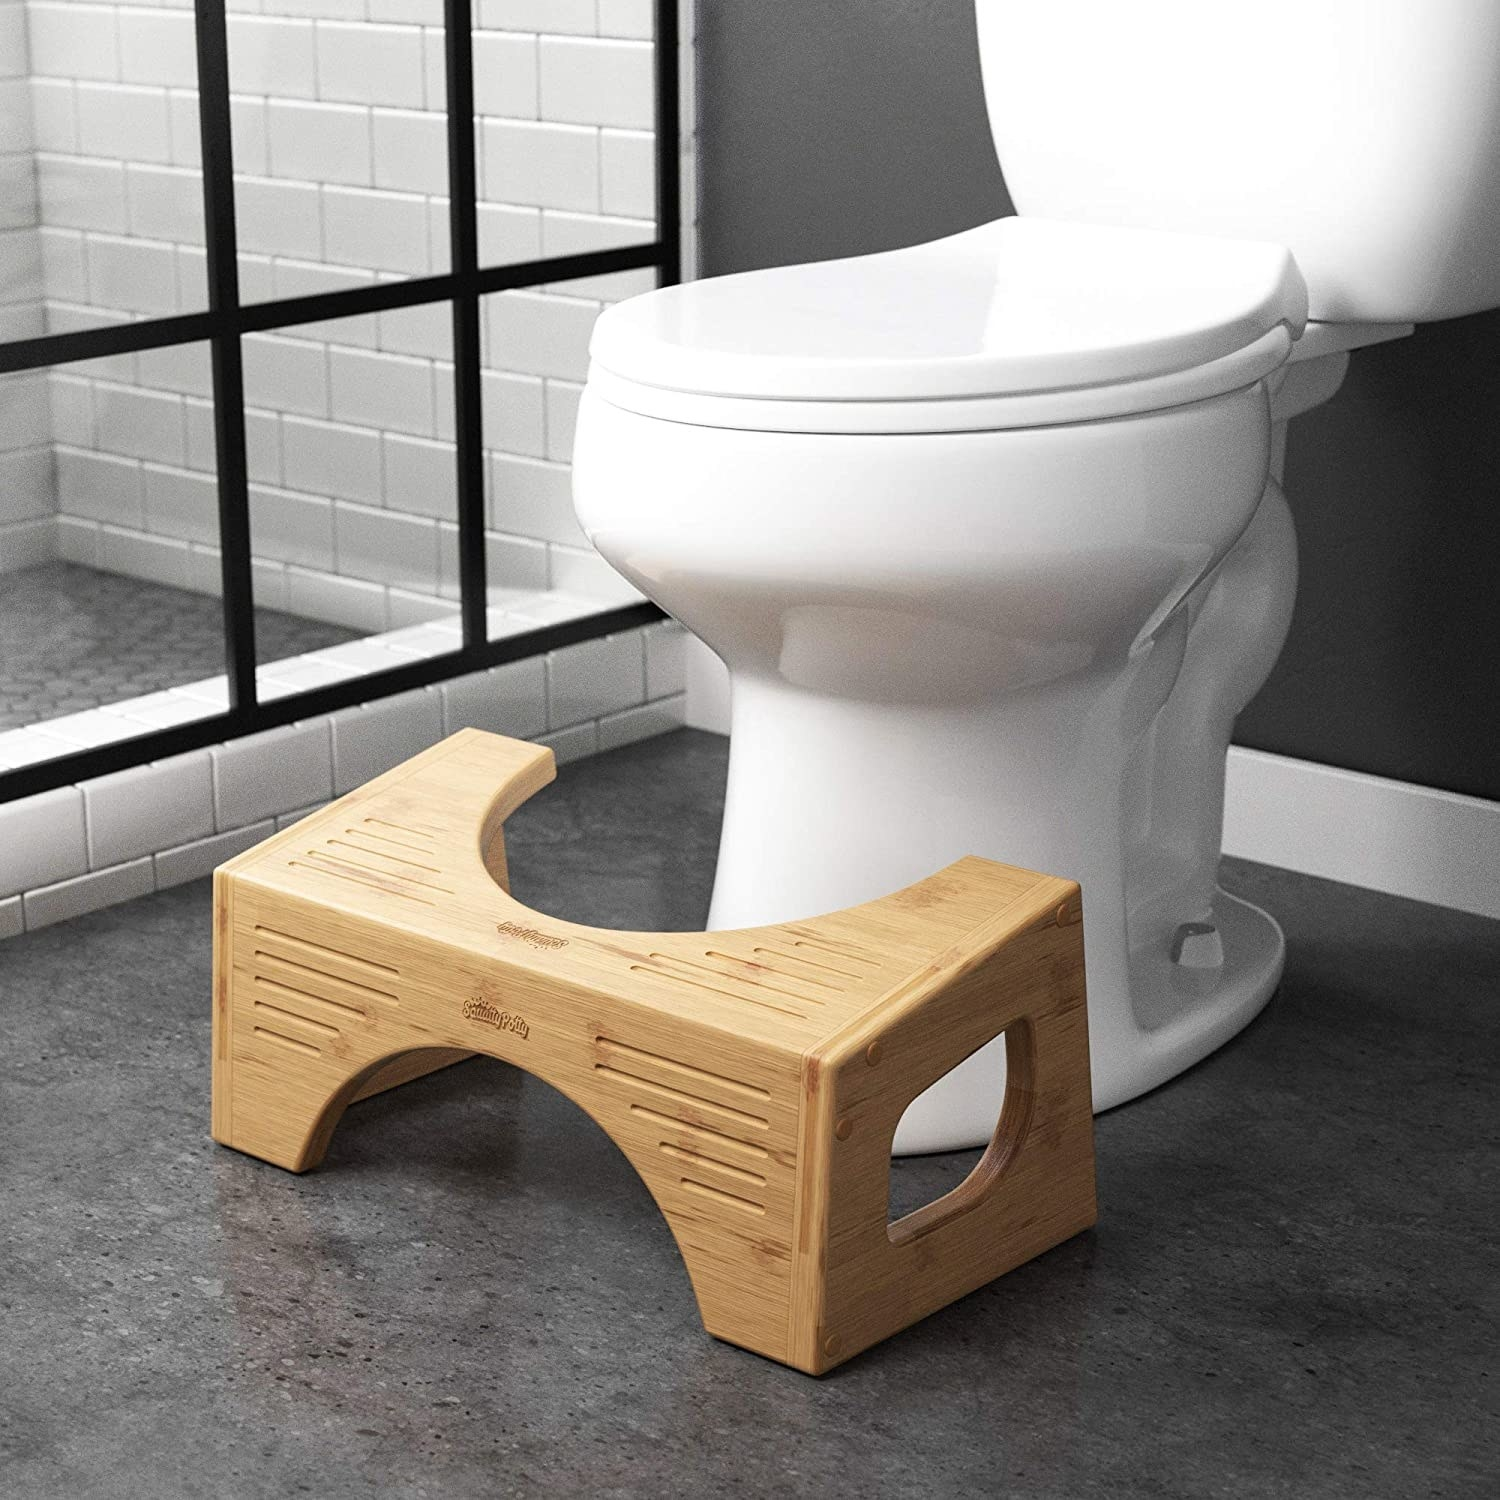 Squatty potty on bathroom floor